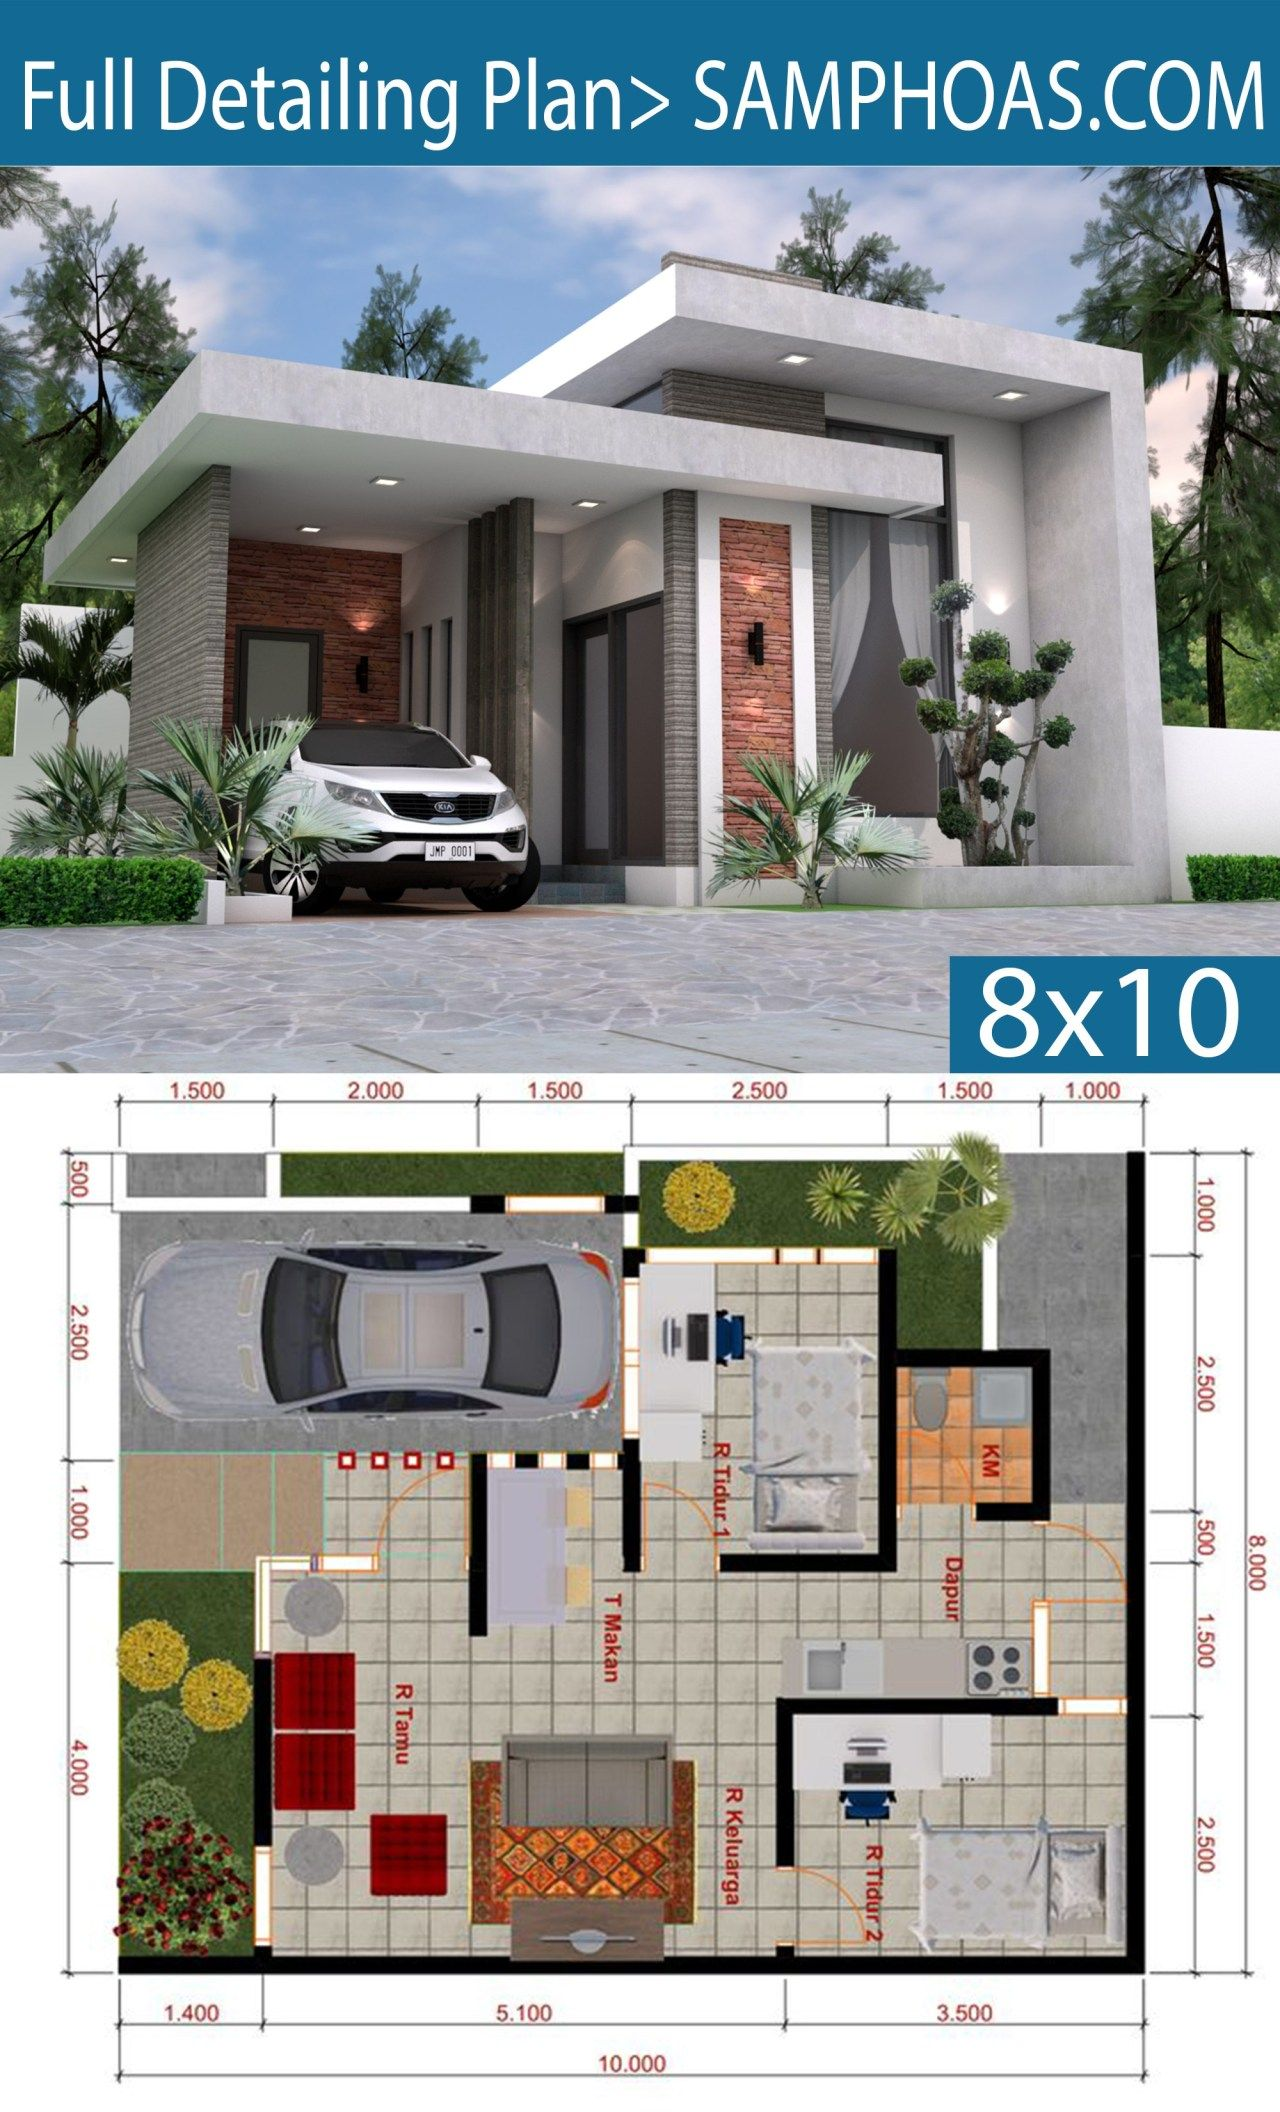 Sketchup House Modeling Idea From Photo 8x10m Samphoas Plan House Floor Design Modern House Design Small House Design